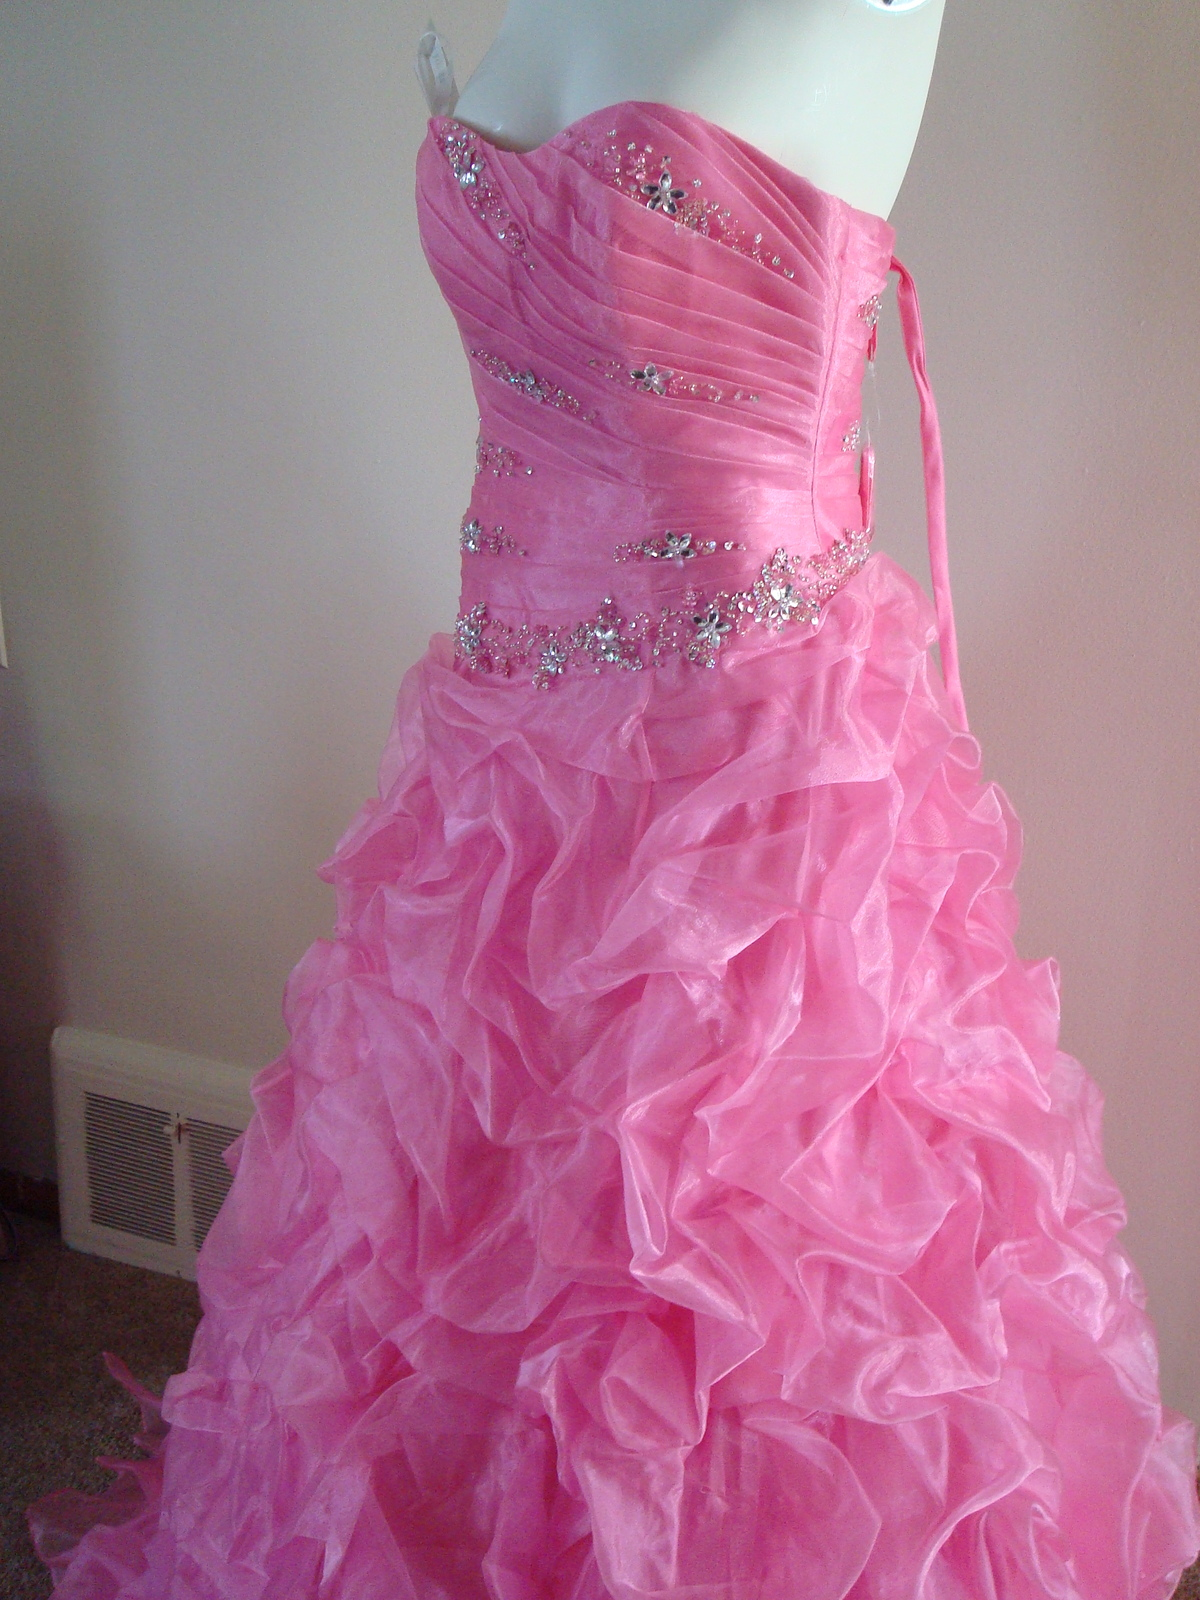 Pink Prom Dress Size 6 by Forever Yours MSRP $629 NWT